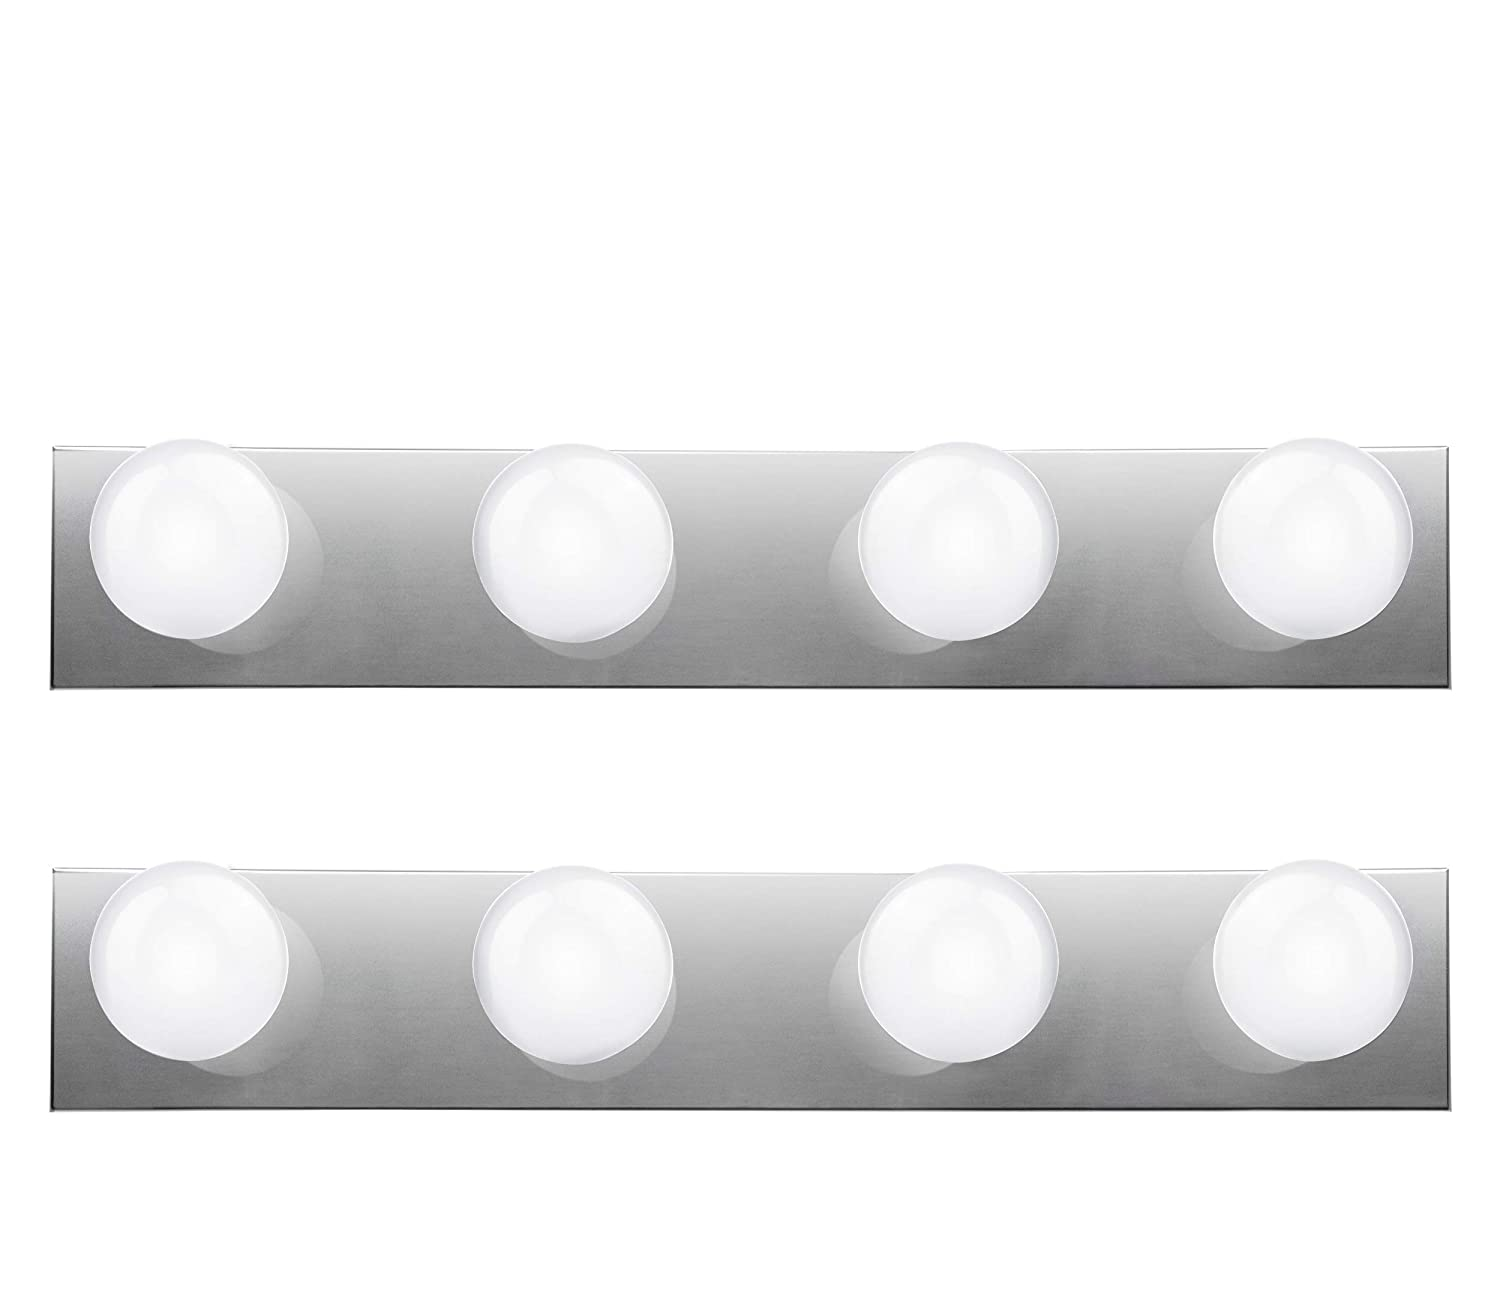 Hyperikon Vanity Lights 4 Light Vanity Bar Strip Fixture 24 Inch